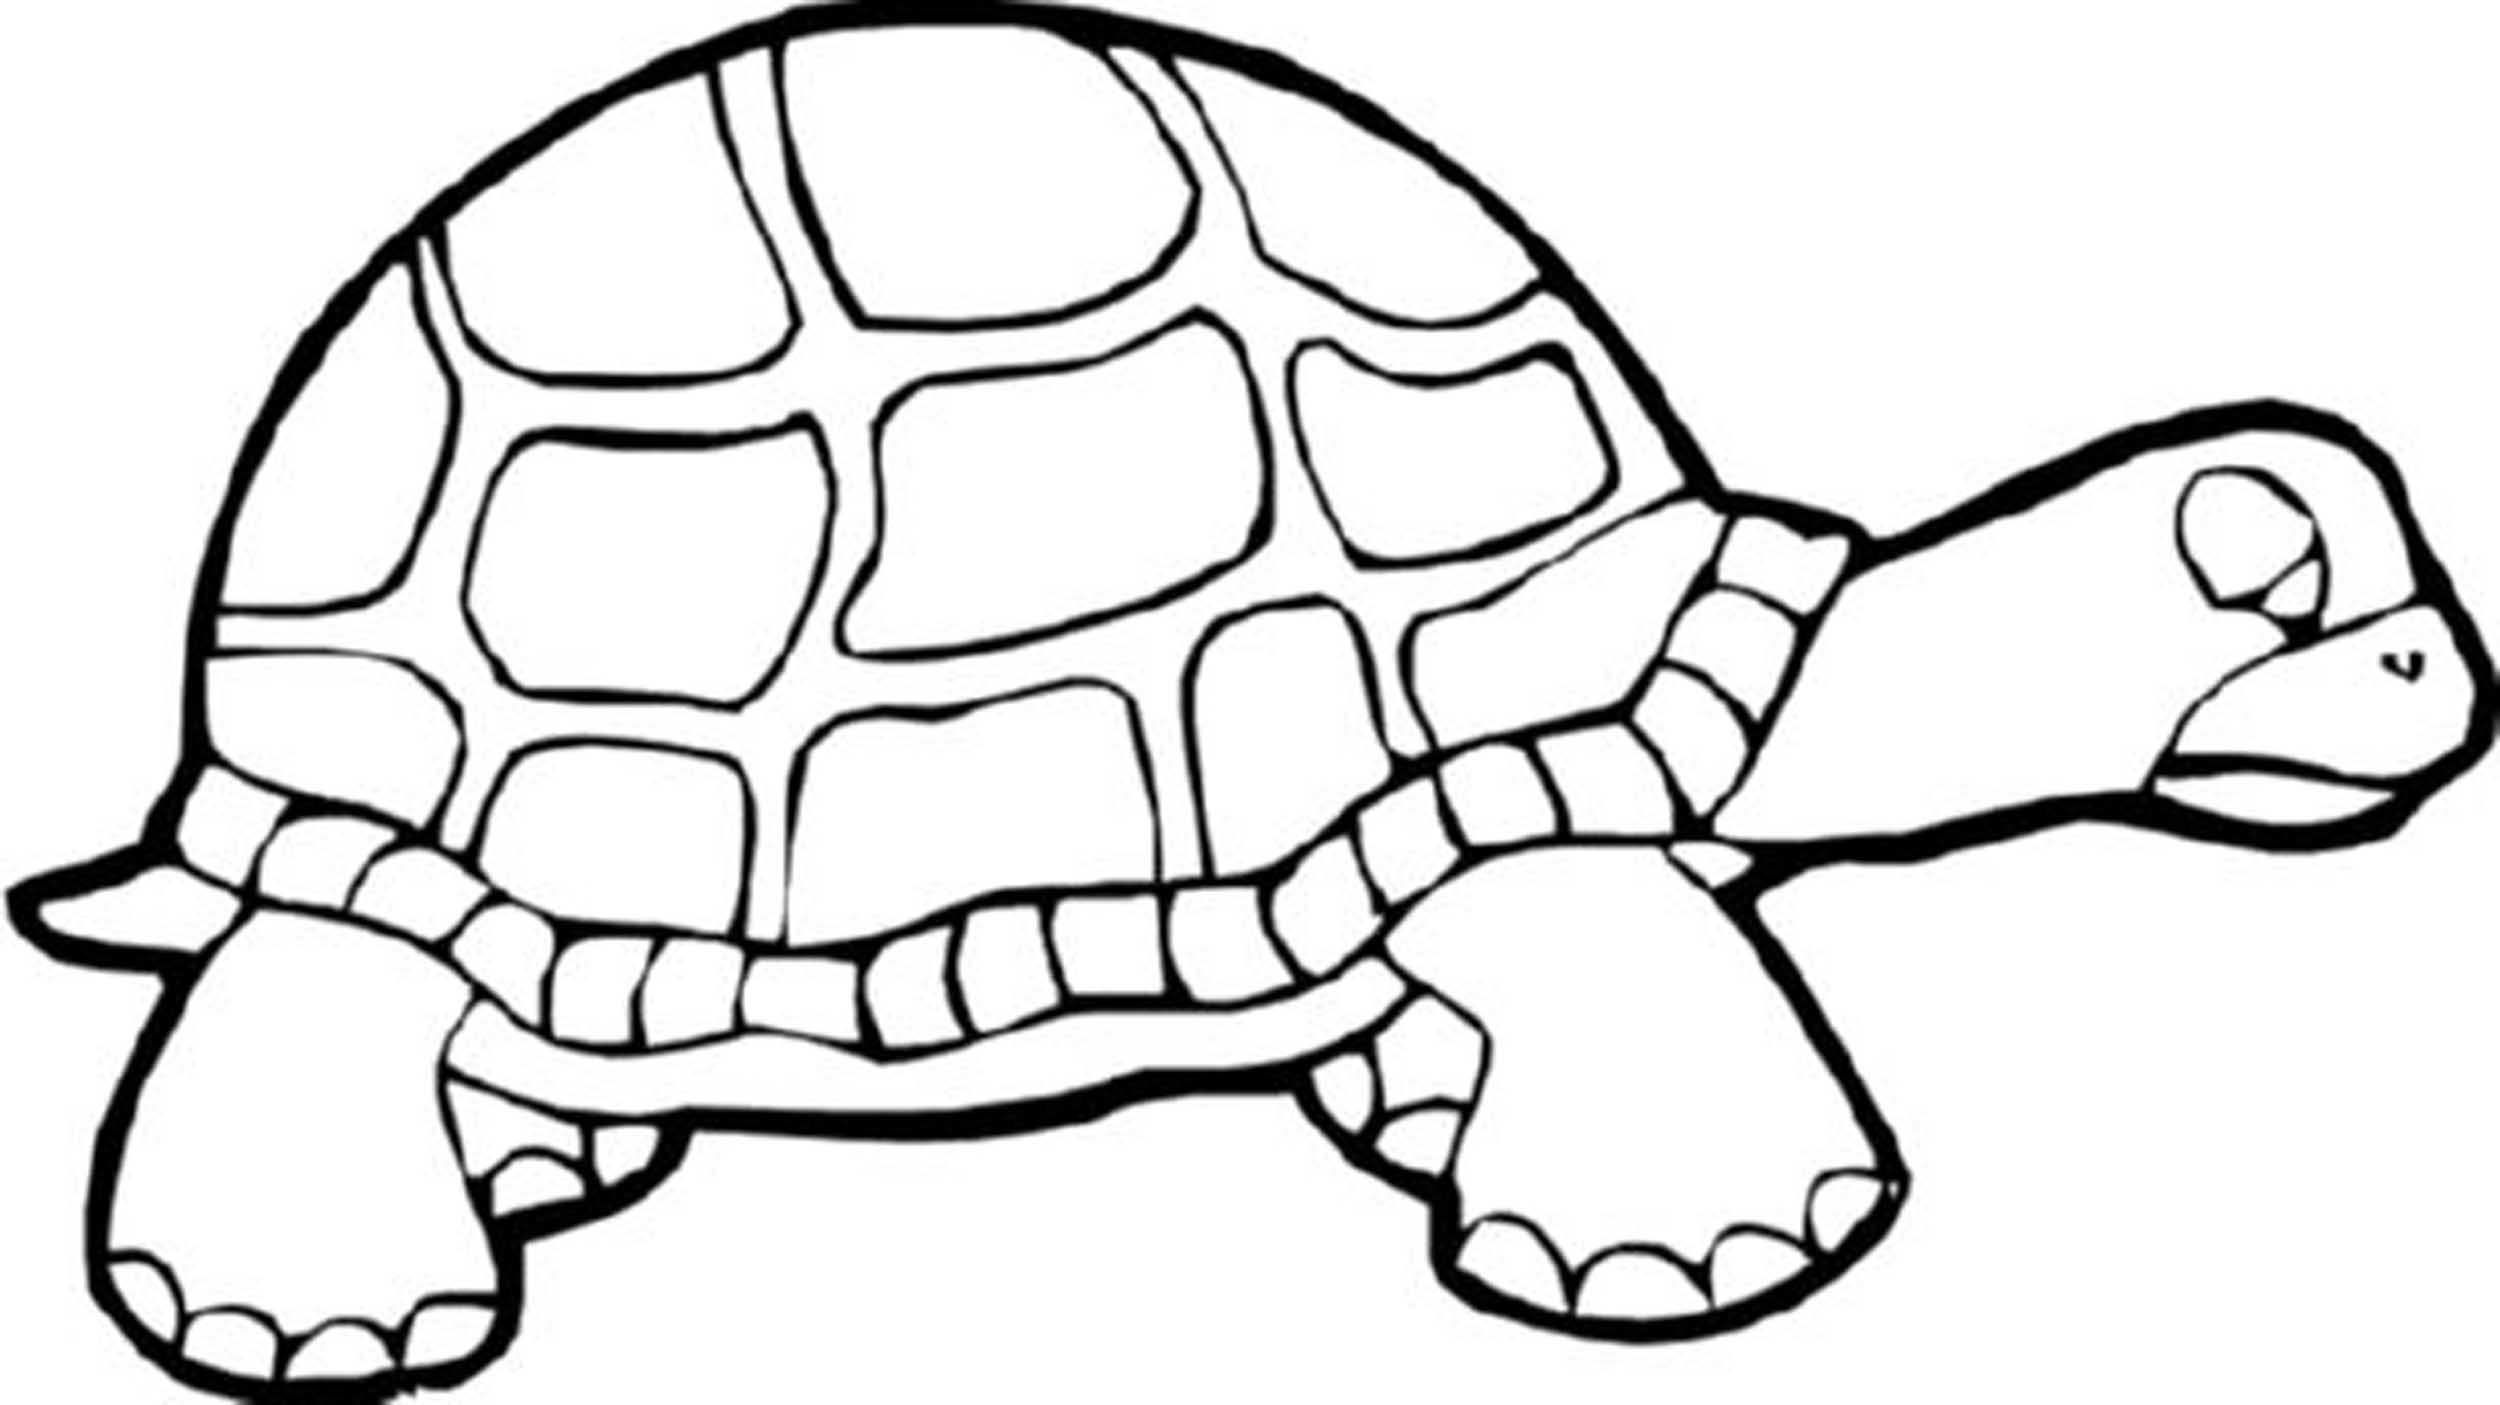 2500x1405 Realistic Turtles Coloring Pages Turtle Page Free Printable